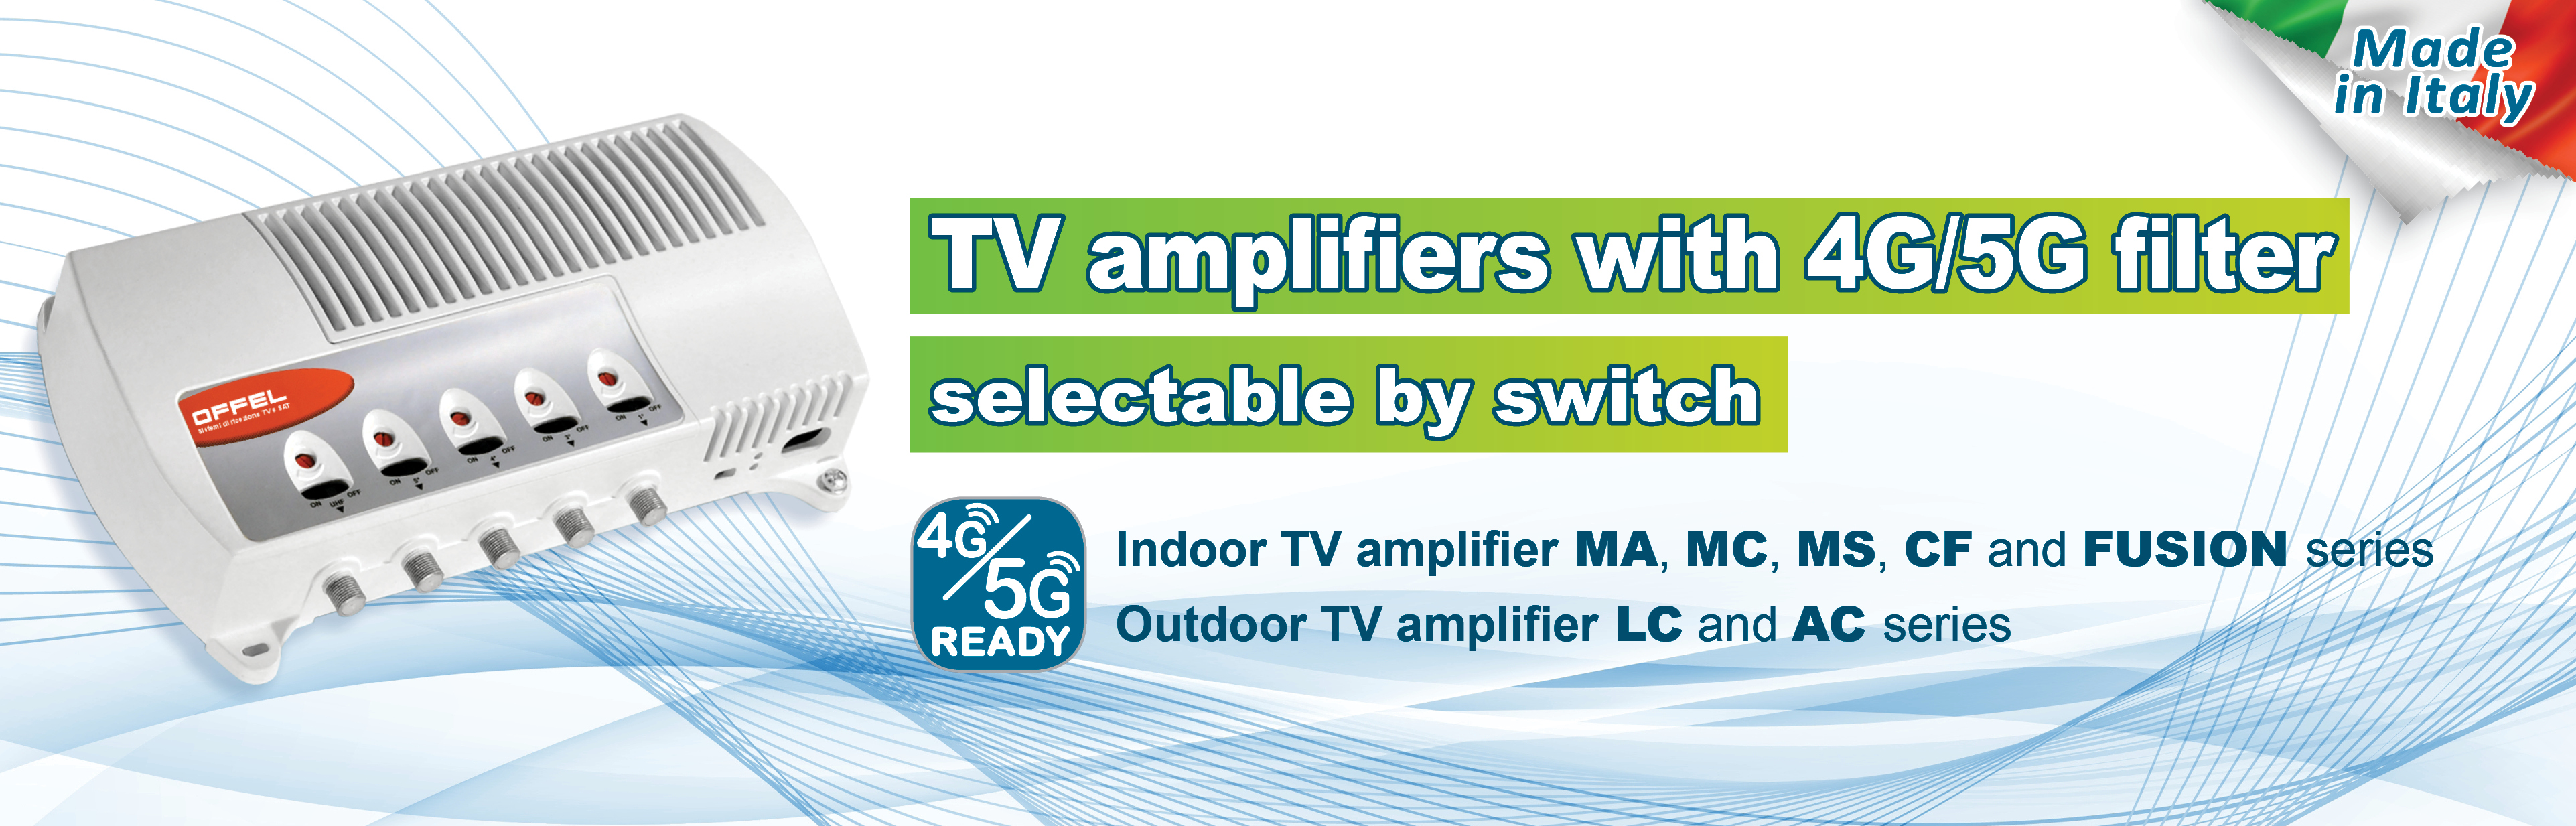 TV amplifiers with 4G/5G filter selectable by switch